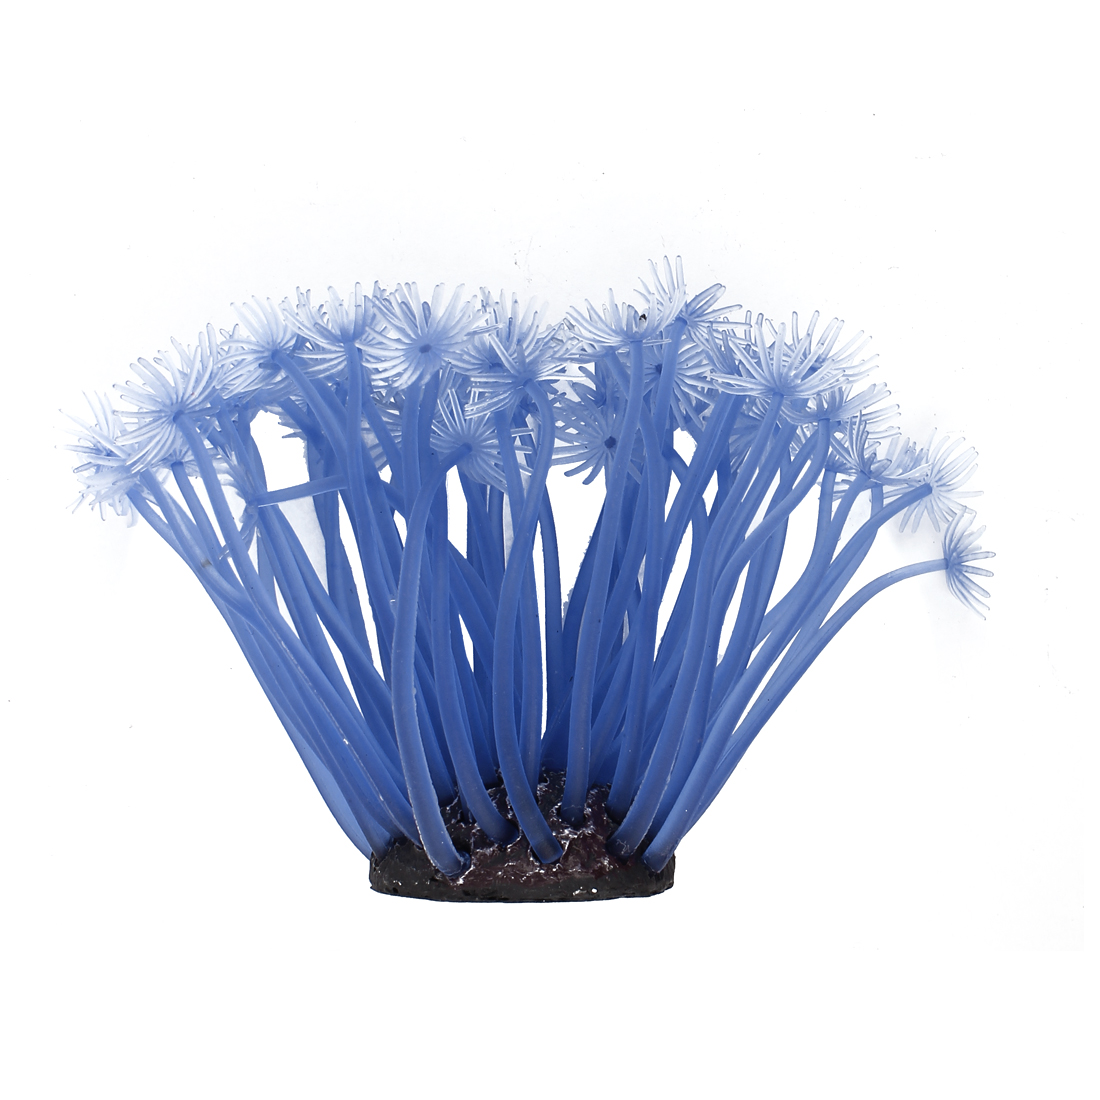 Aquarium Fish Tank Soft Silicone Artificial Anemone Coral Ornament Sky Blue